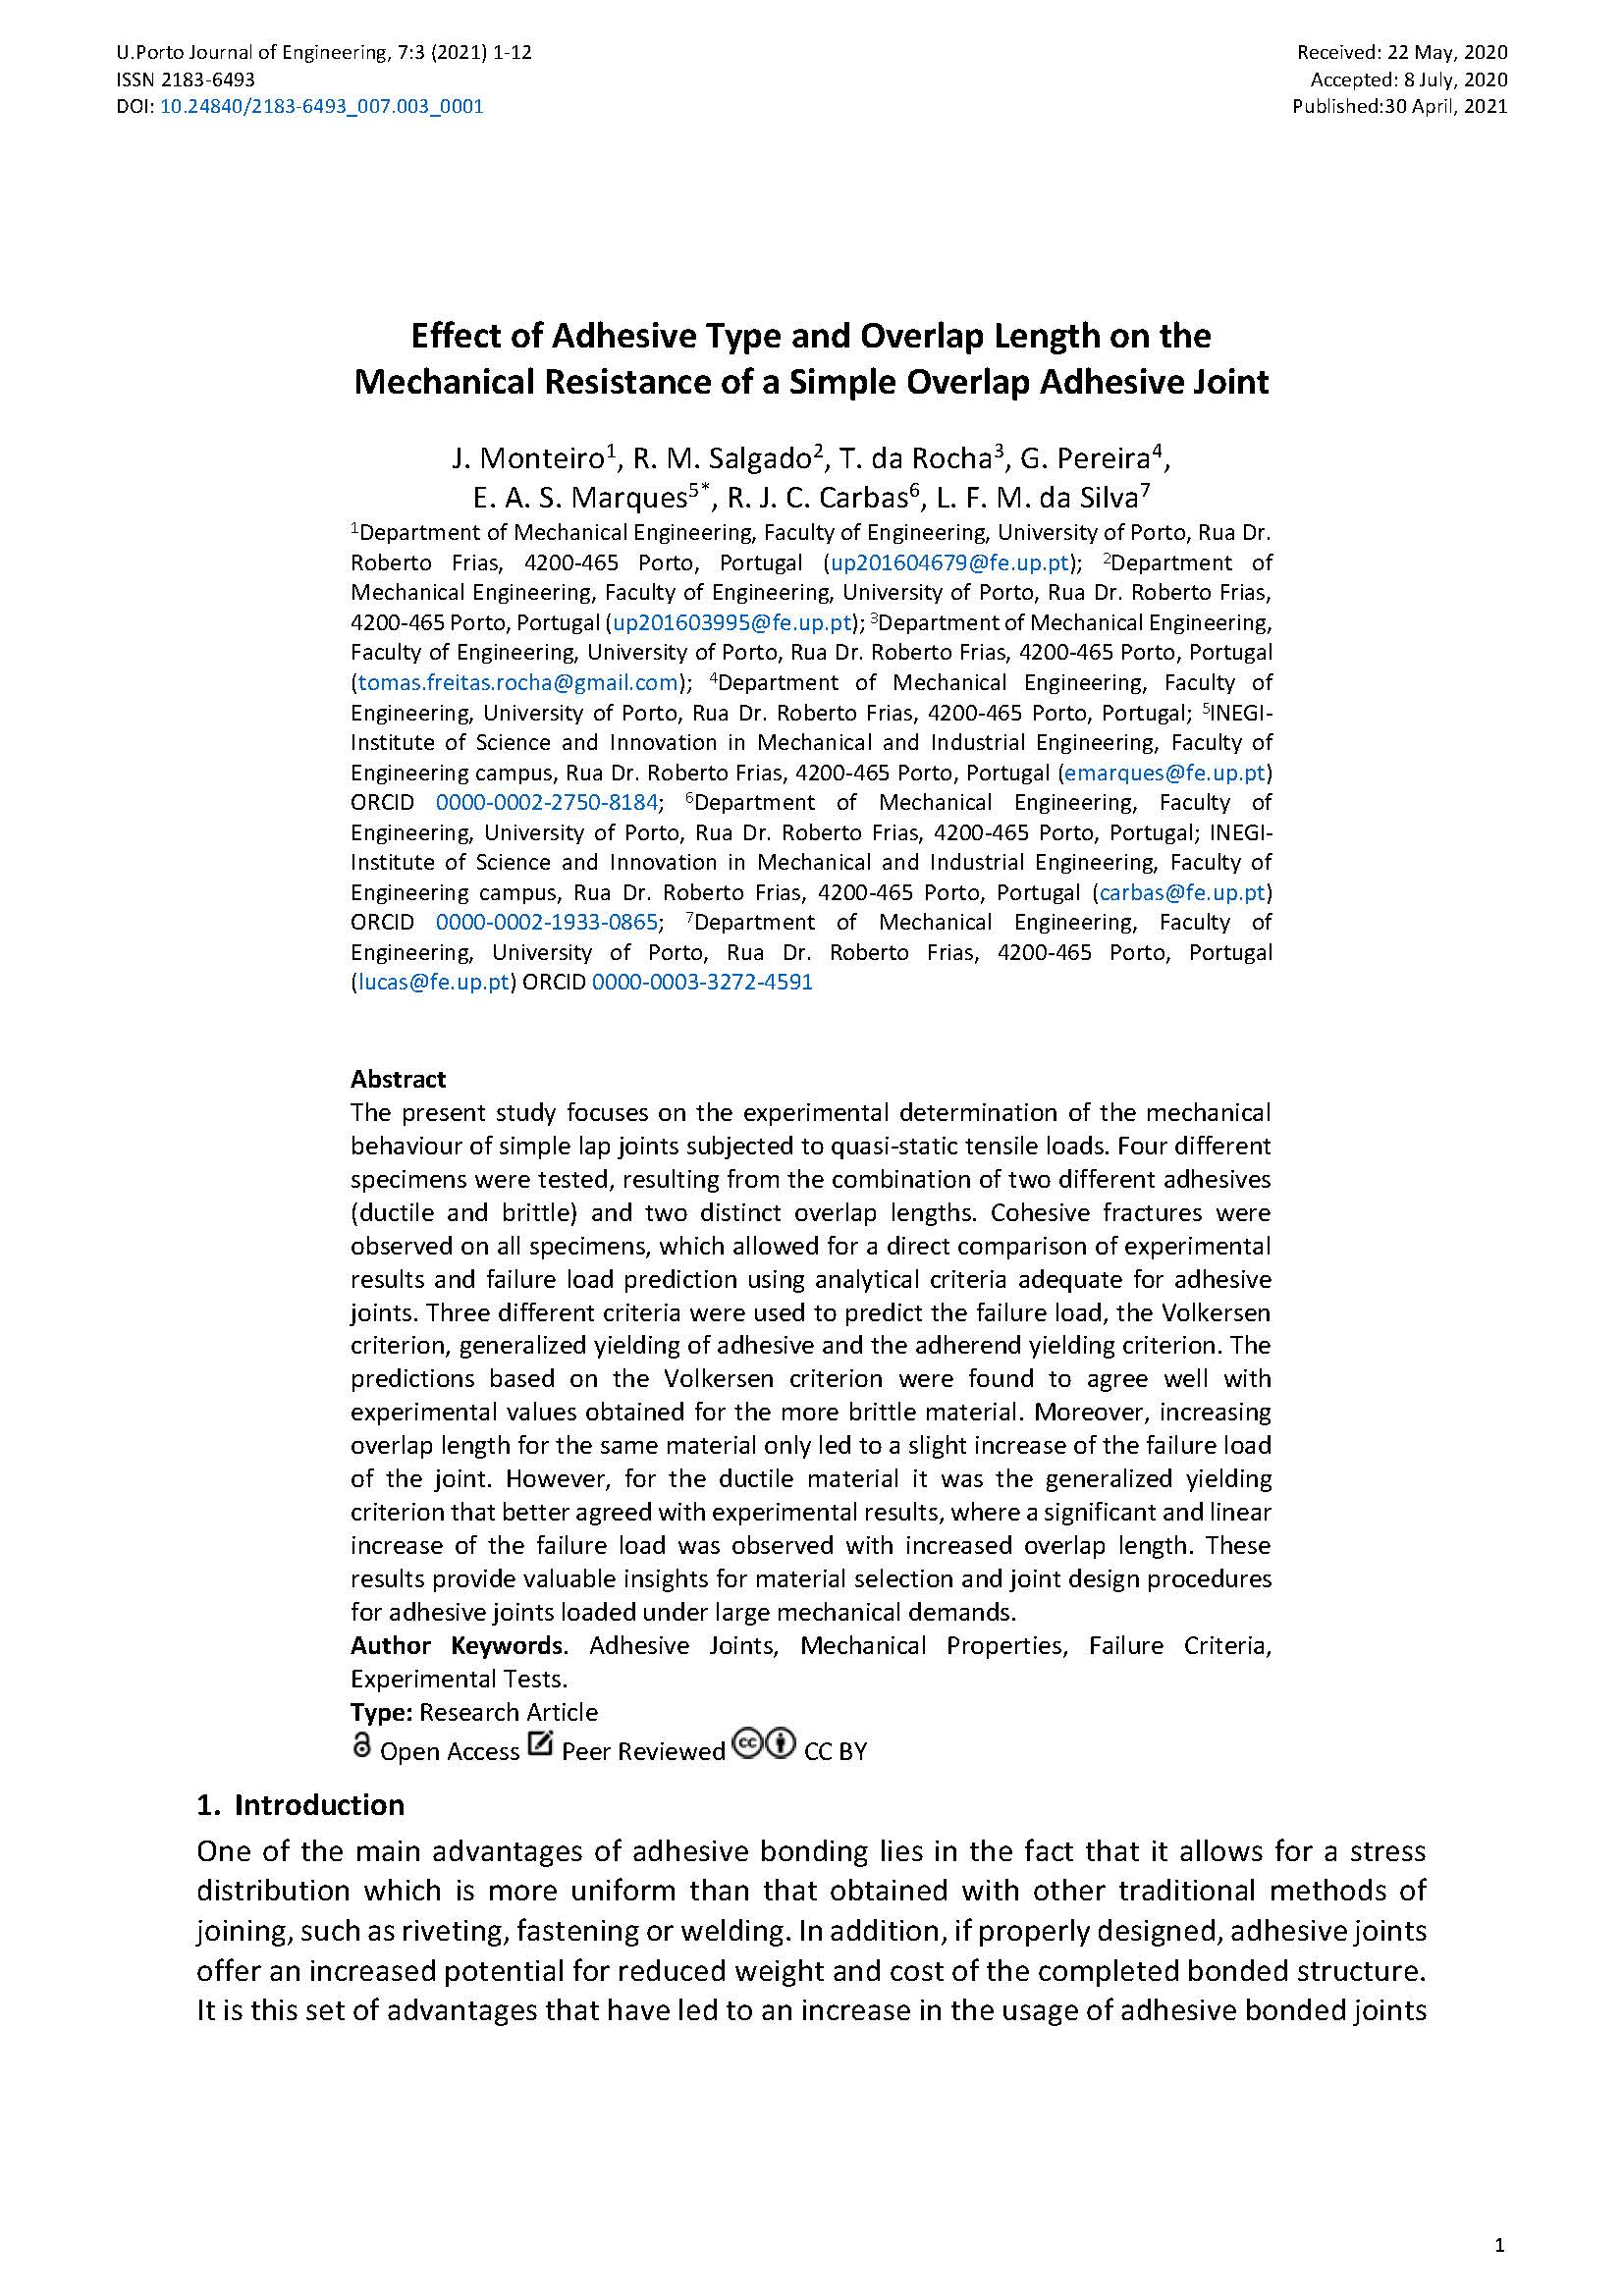 Effect of Adhesive Type and Overlap Length on the Mechanical Resistance of a Simple Overlap Adhesive Joint